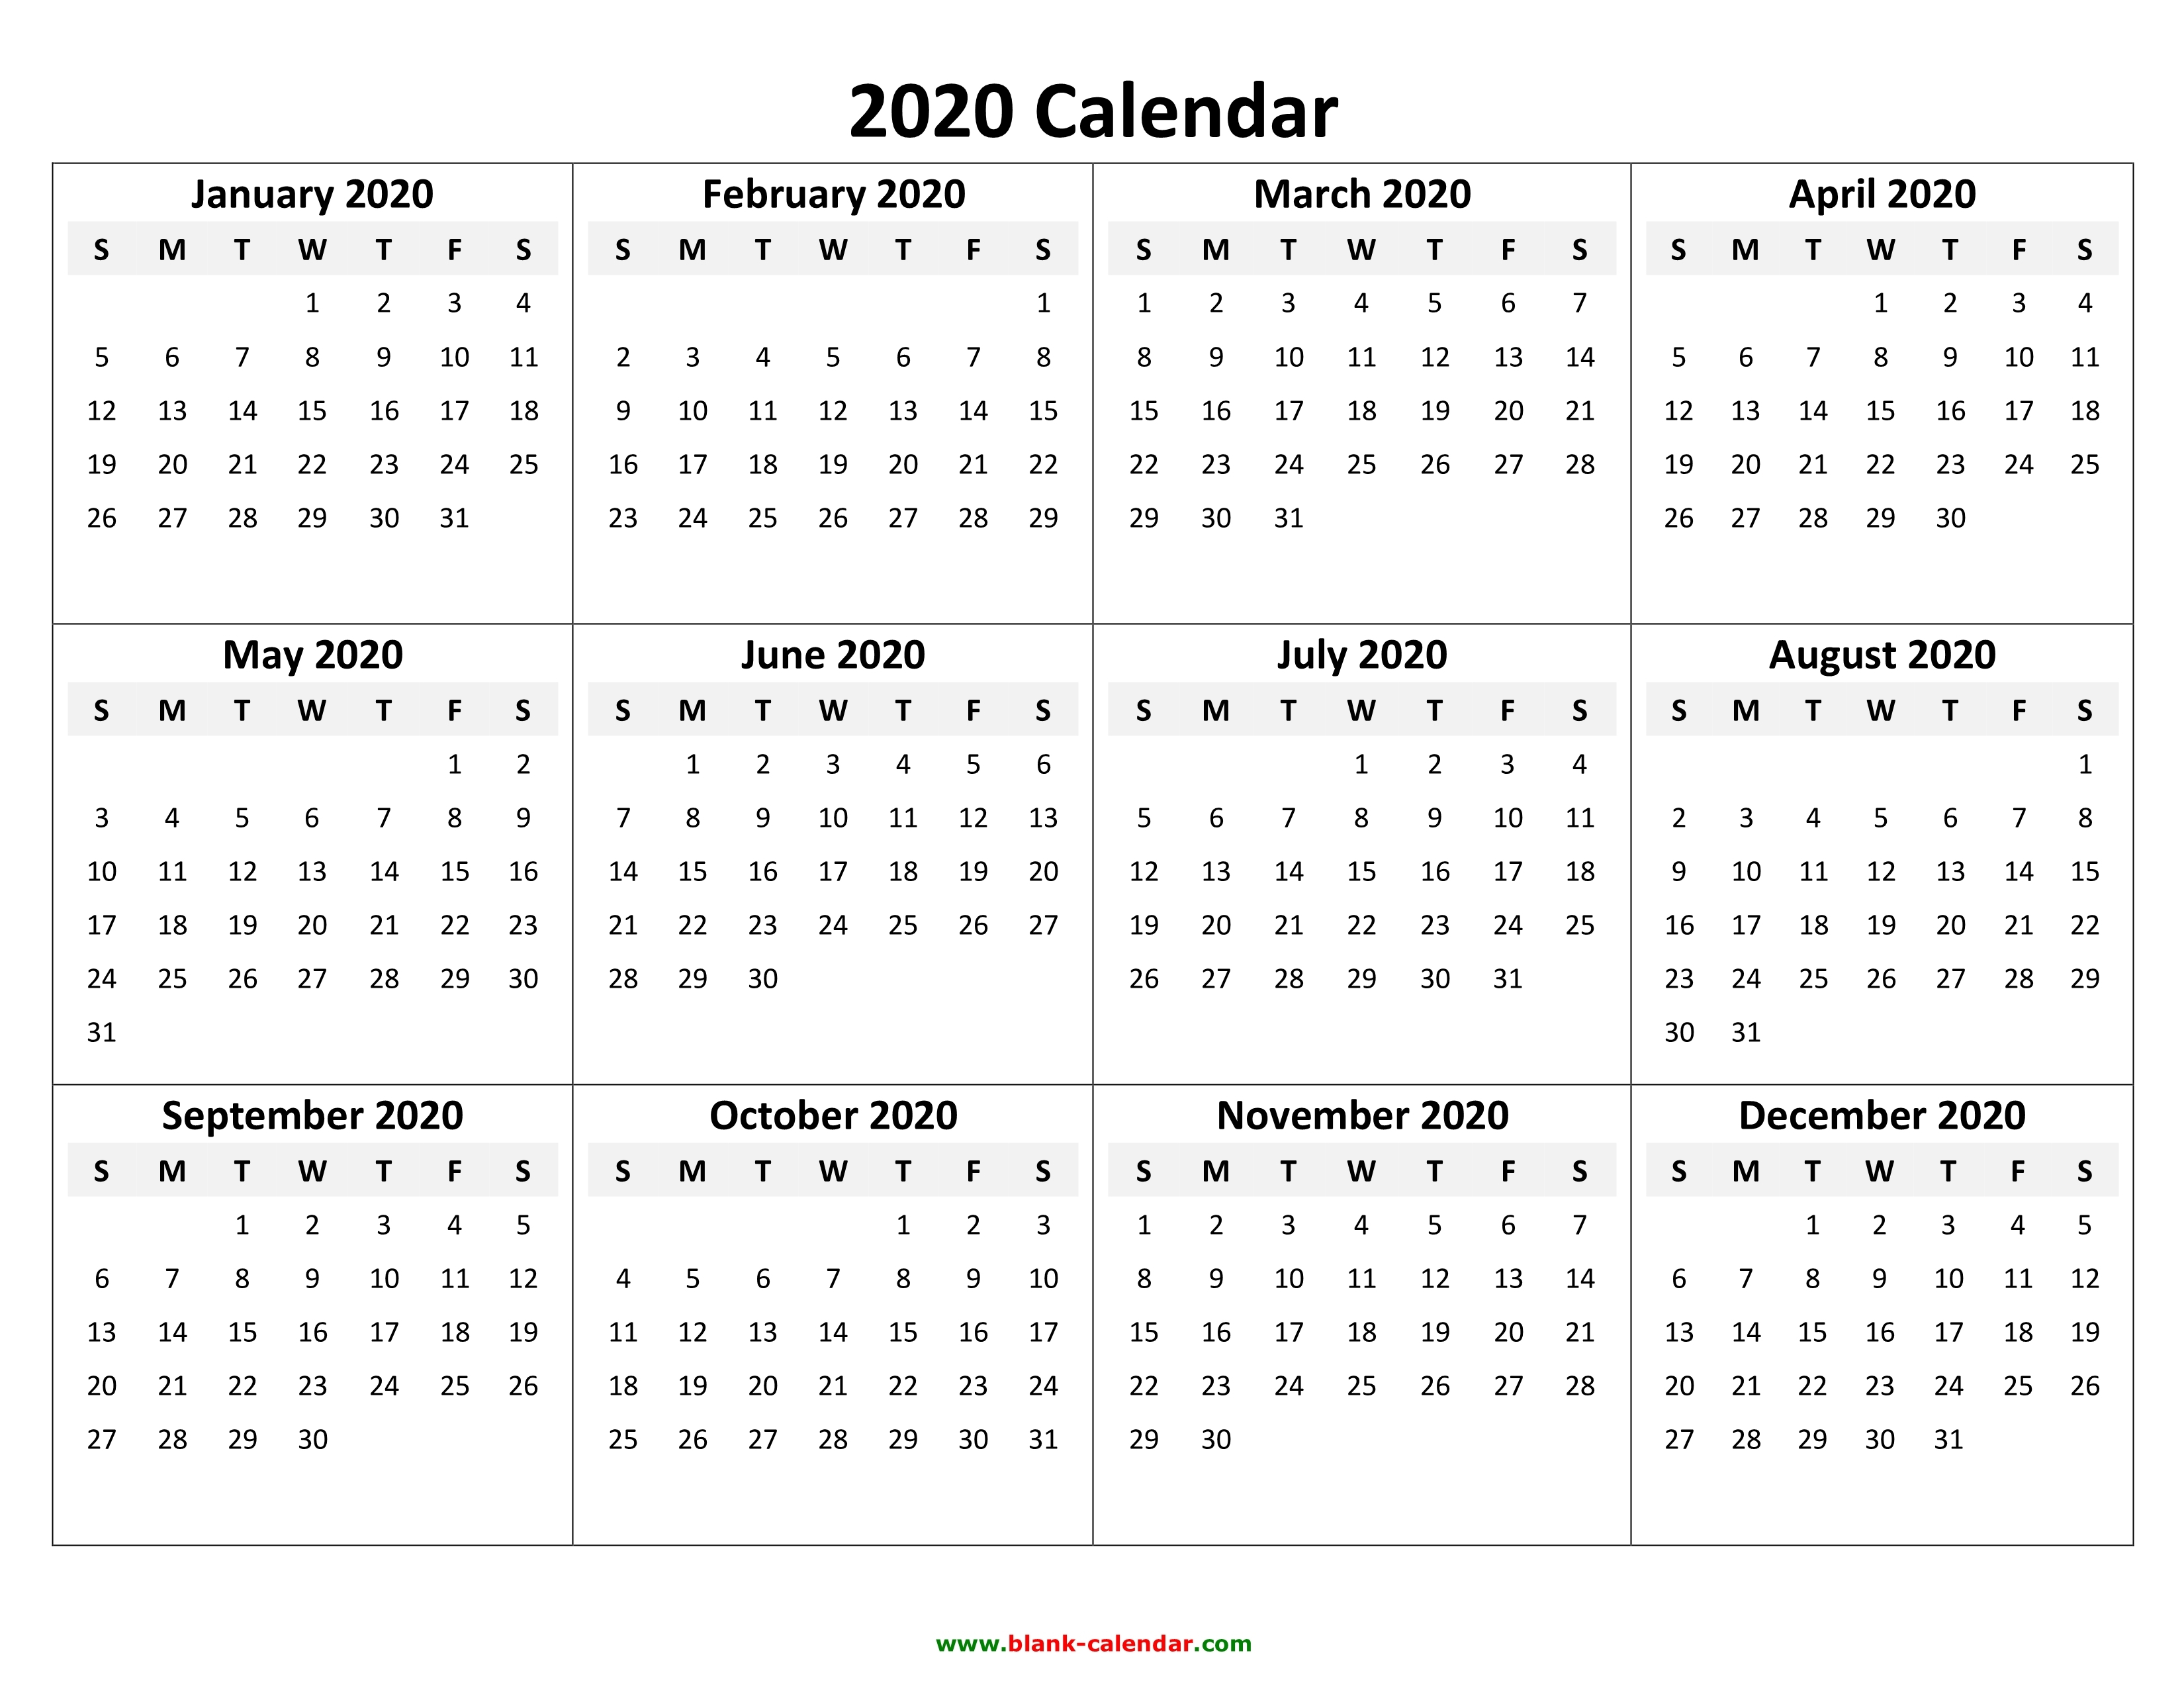 2020 2020 Calendar Printable | Isacl inside Print Free 2020 Calendars Without Downloading